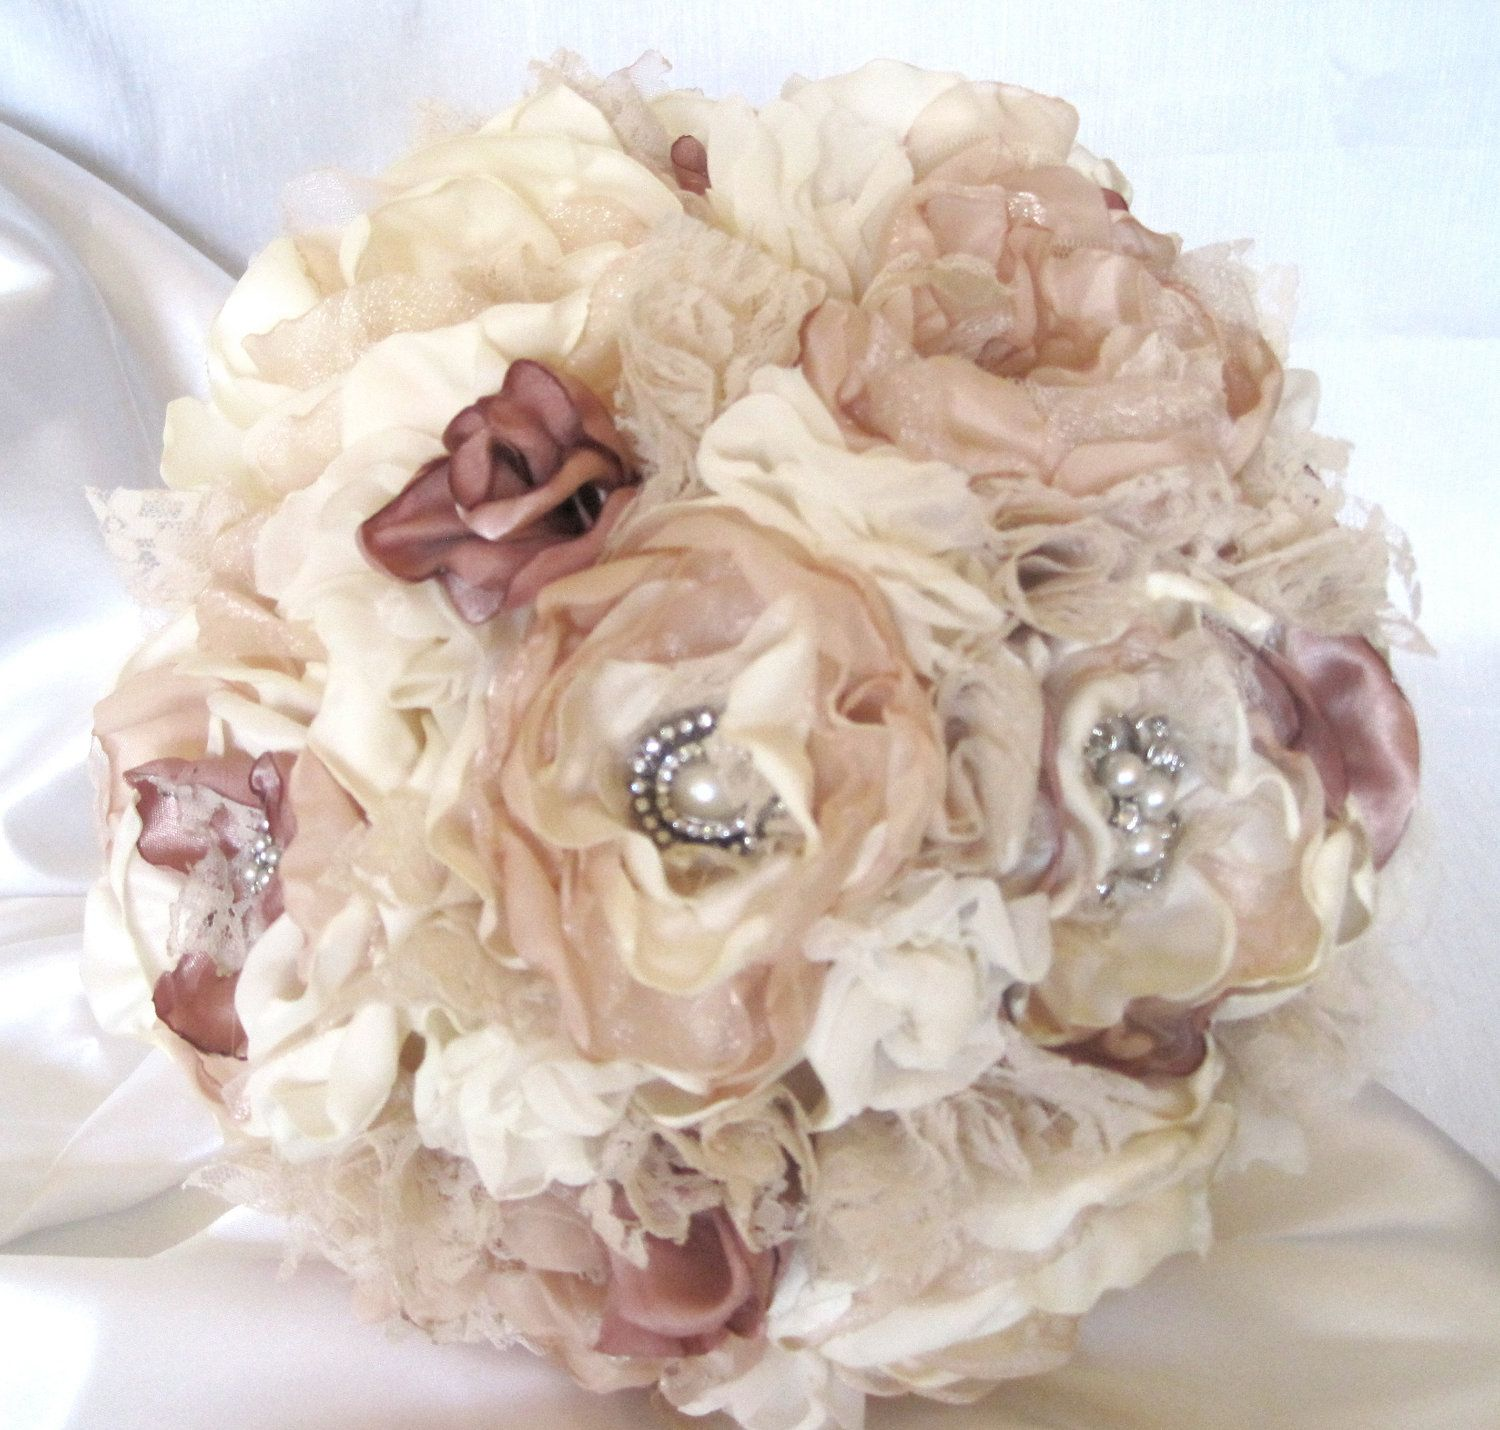 Wedding bouquet vintage inspired fabric brooch bouquet in ivory wedding bouquet fabric flower vintage inspired brooch bouquet in ivory champagne and dusty rose with pearls rhinestones and lace custom made izmirmasajfo